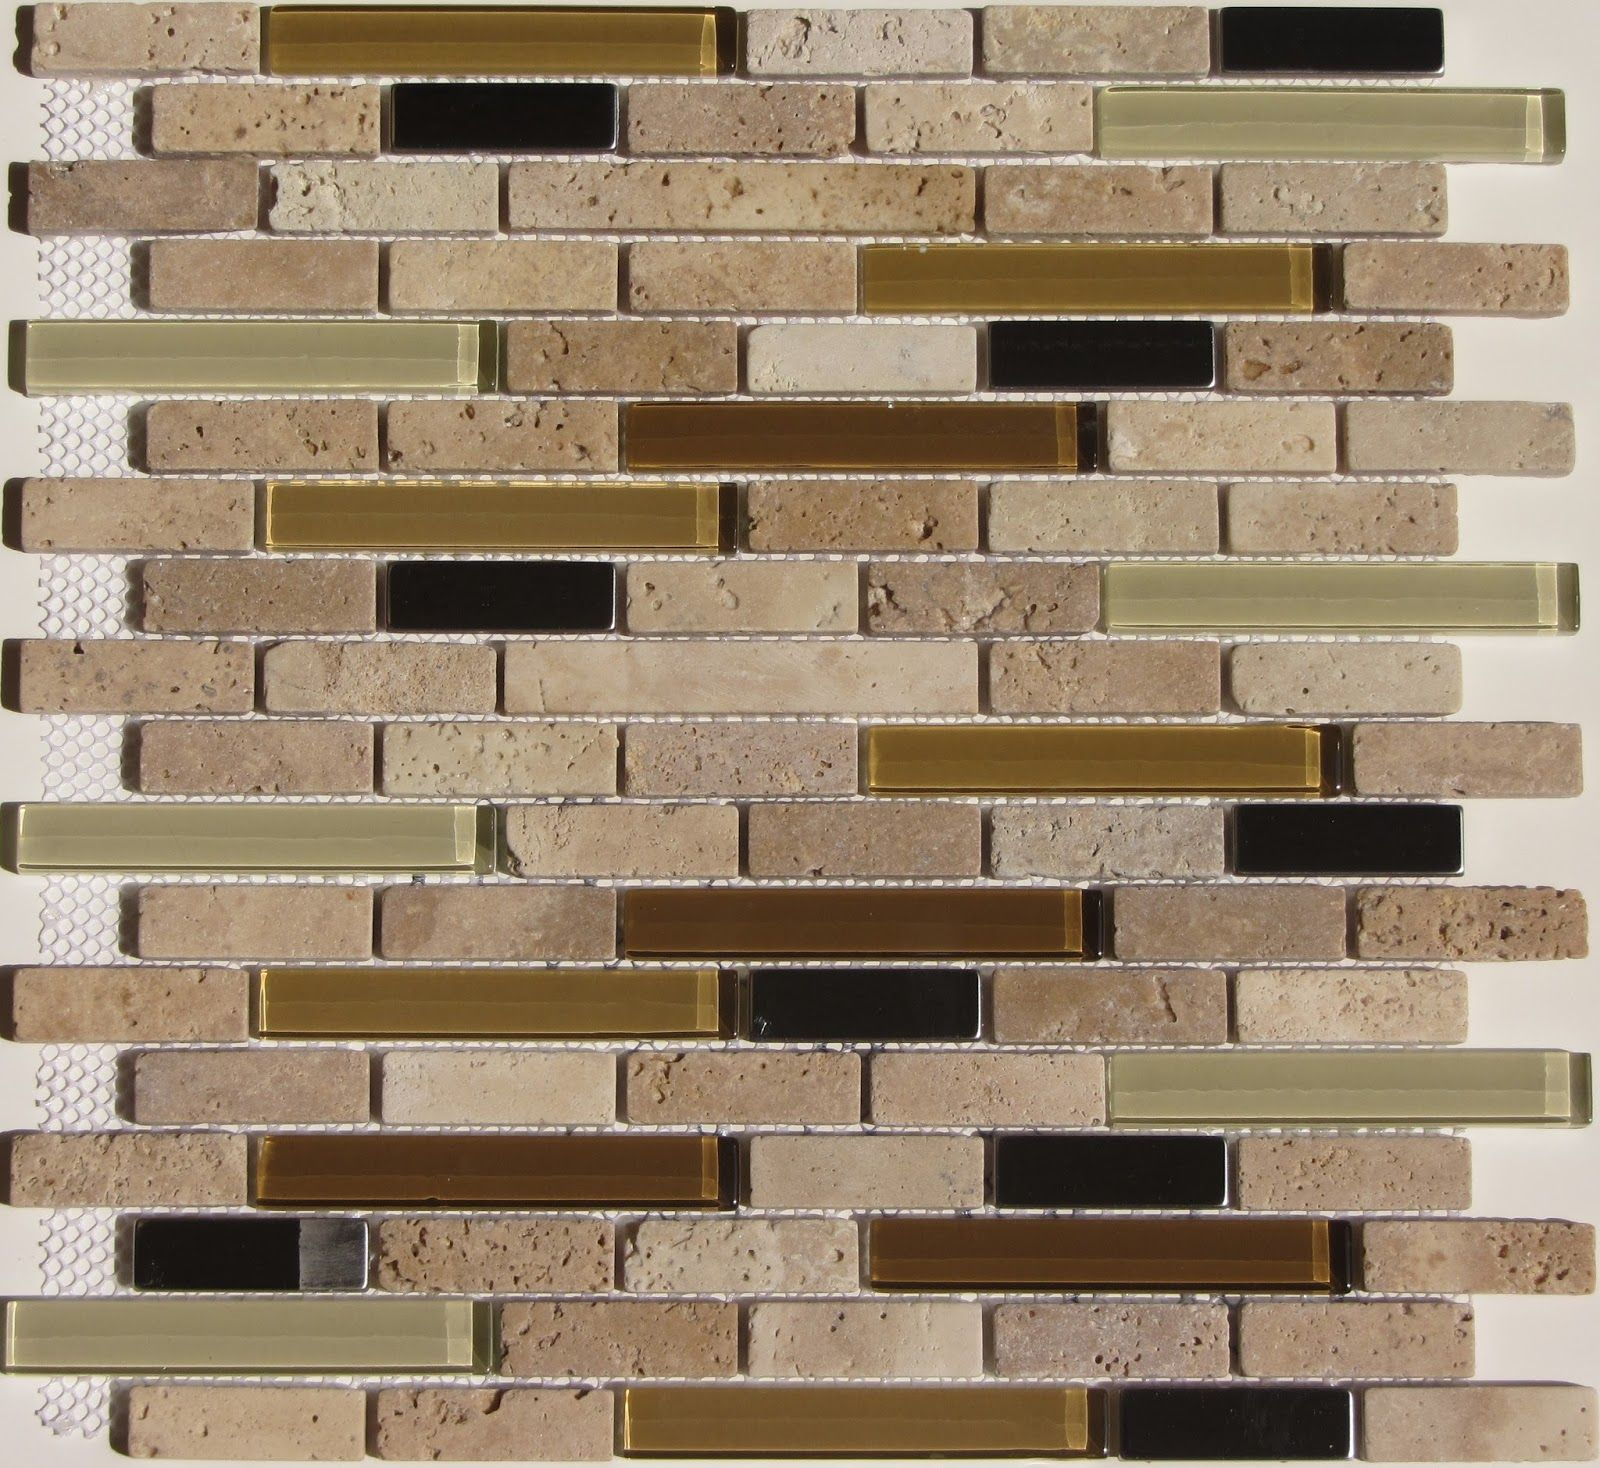 17 Best images about backslash on Pinterest | Glass mosaic tiles, Mosaic  stones and Self adhesive wall tiles